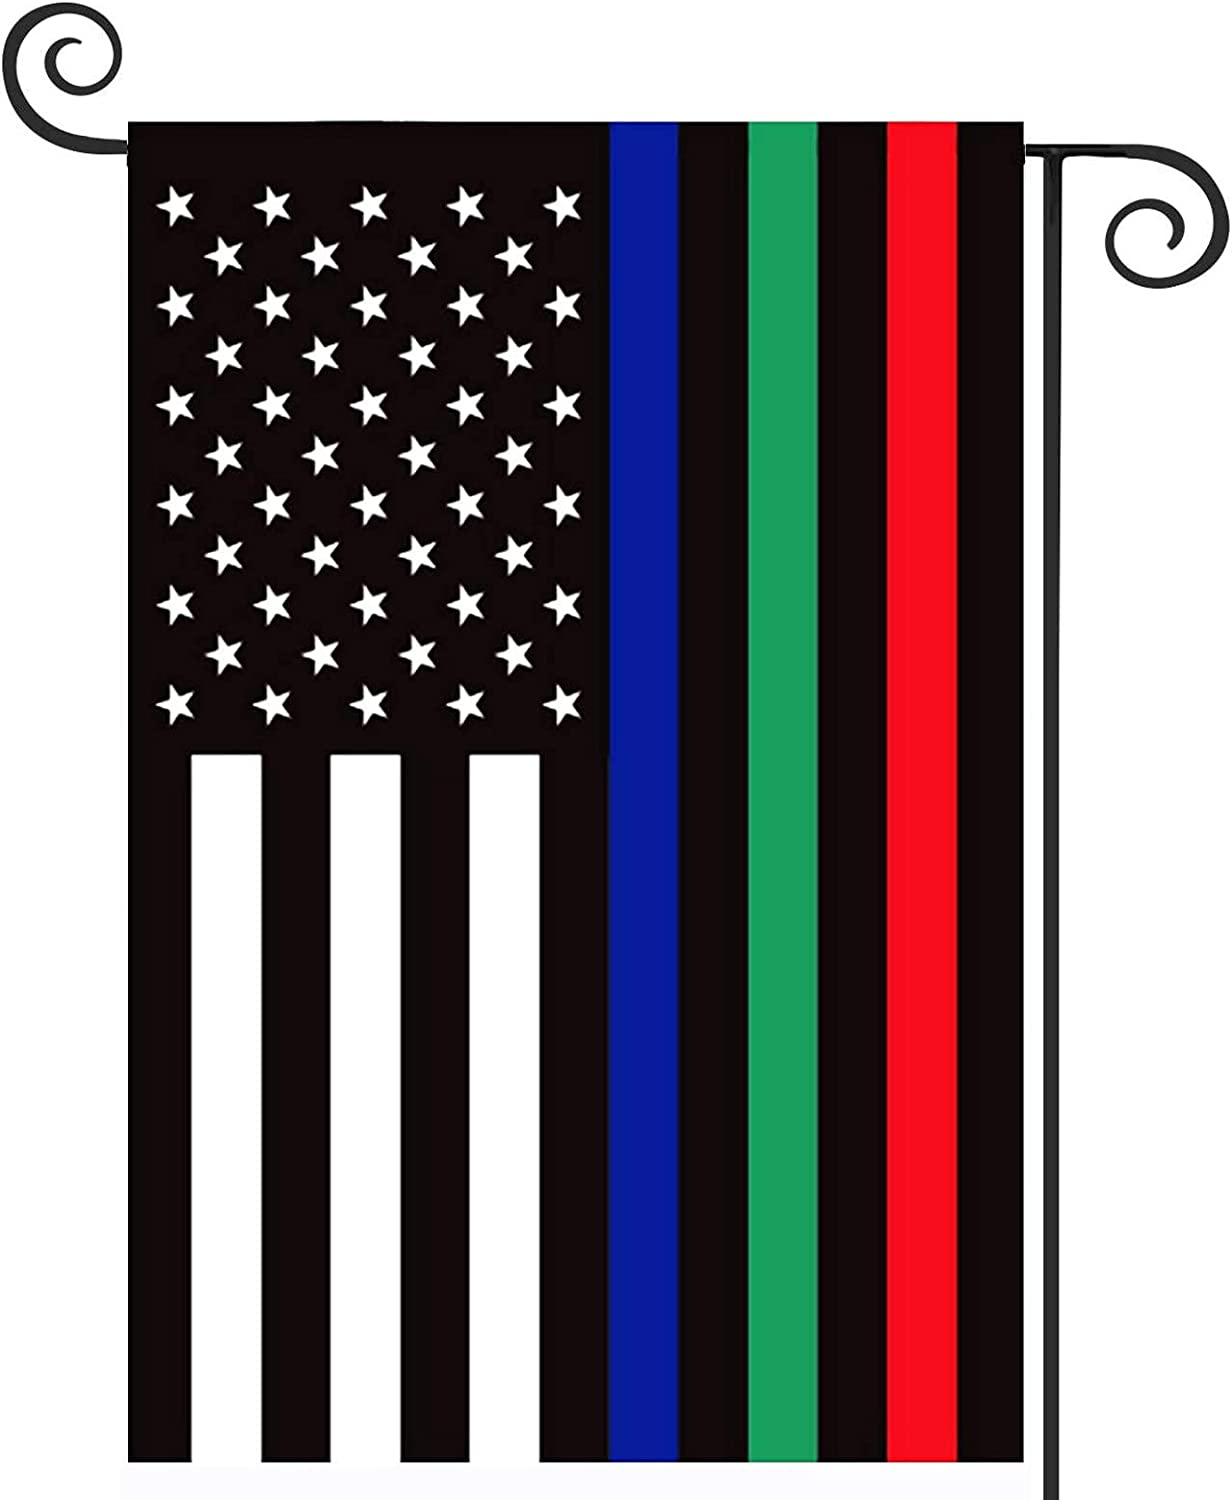 TOPFLAGS Thin Blue Green Red American Flag Garden Flag 12 x 18 - Police Firefighter Military Yard Flags Patriotic Double Sided Small USA Flags for Yard